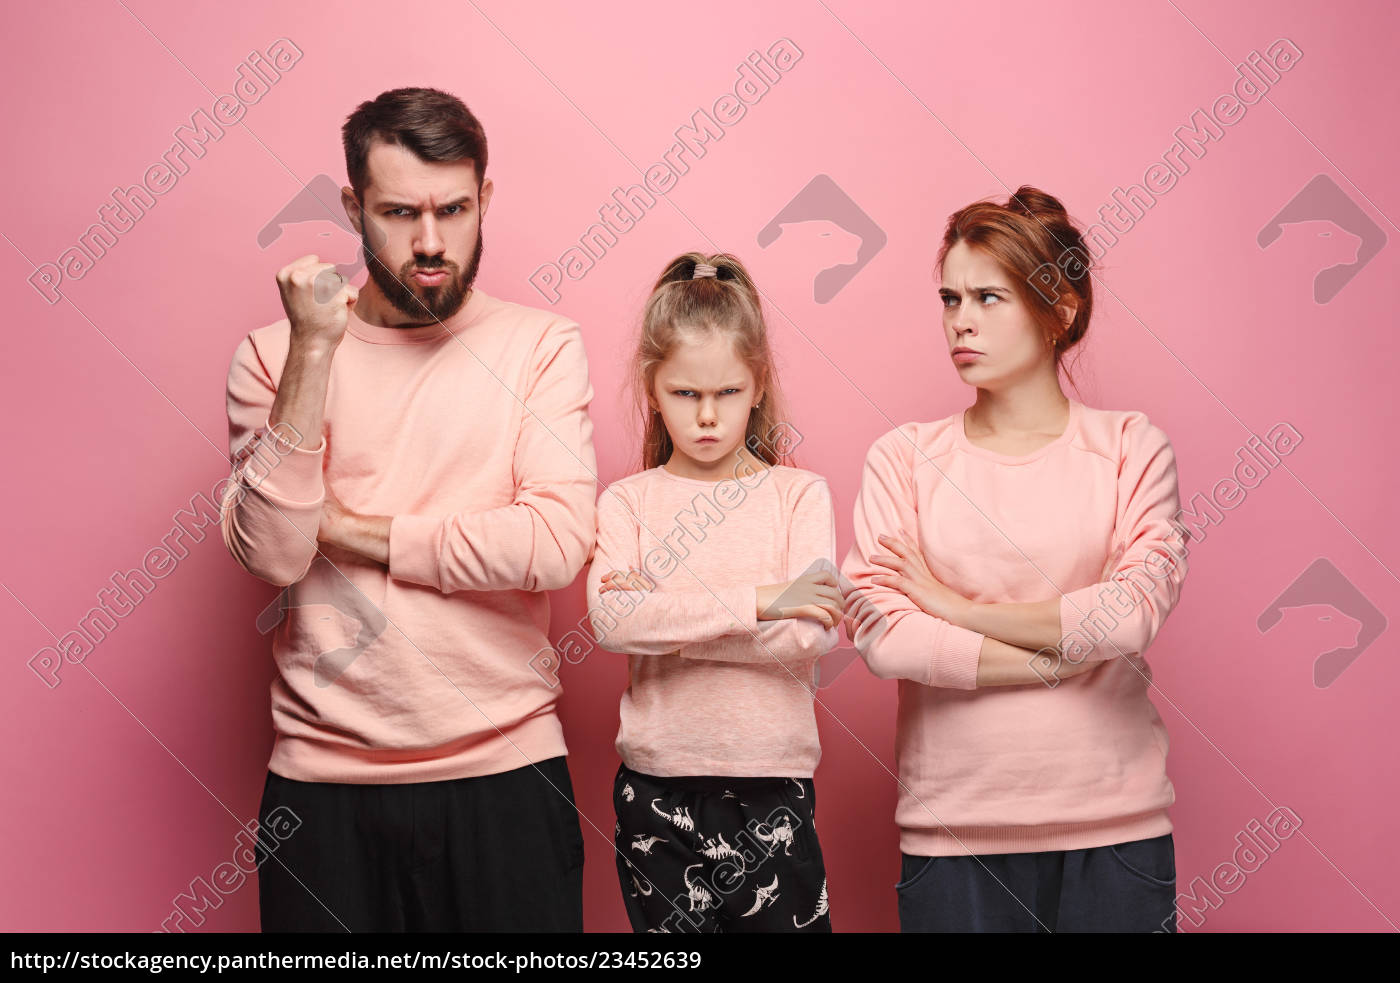 the, sad, family, on, pink - 23452639